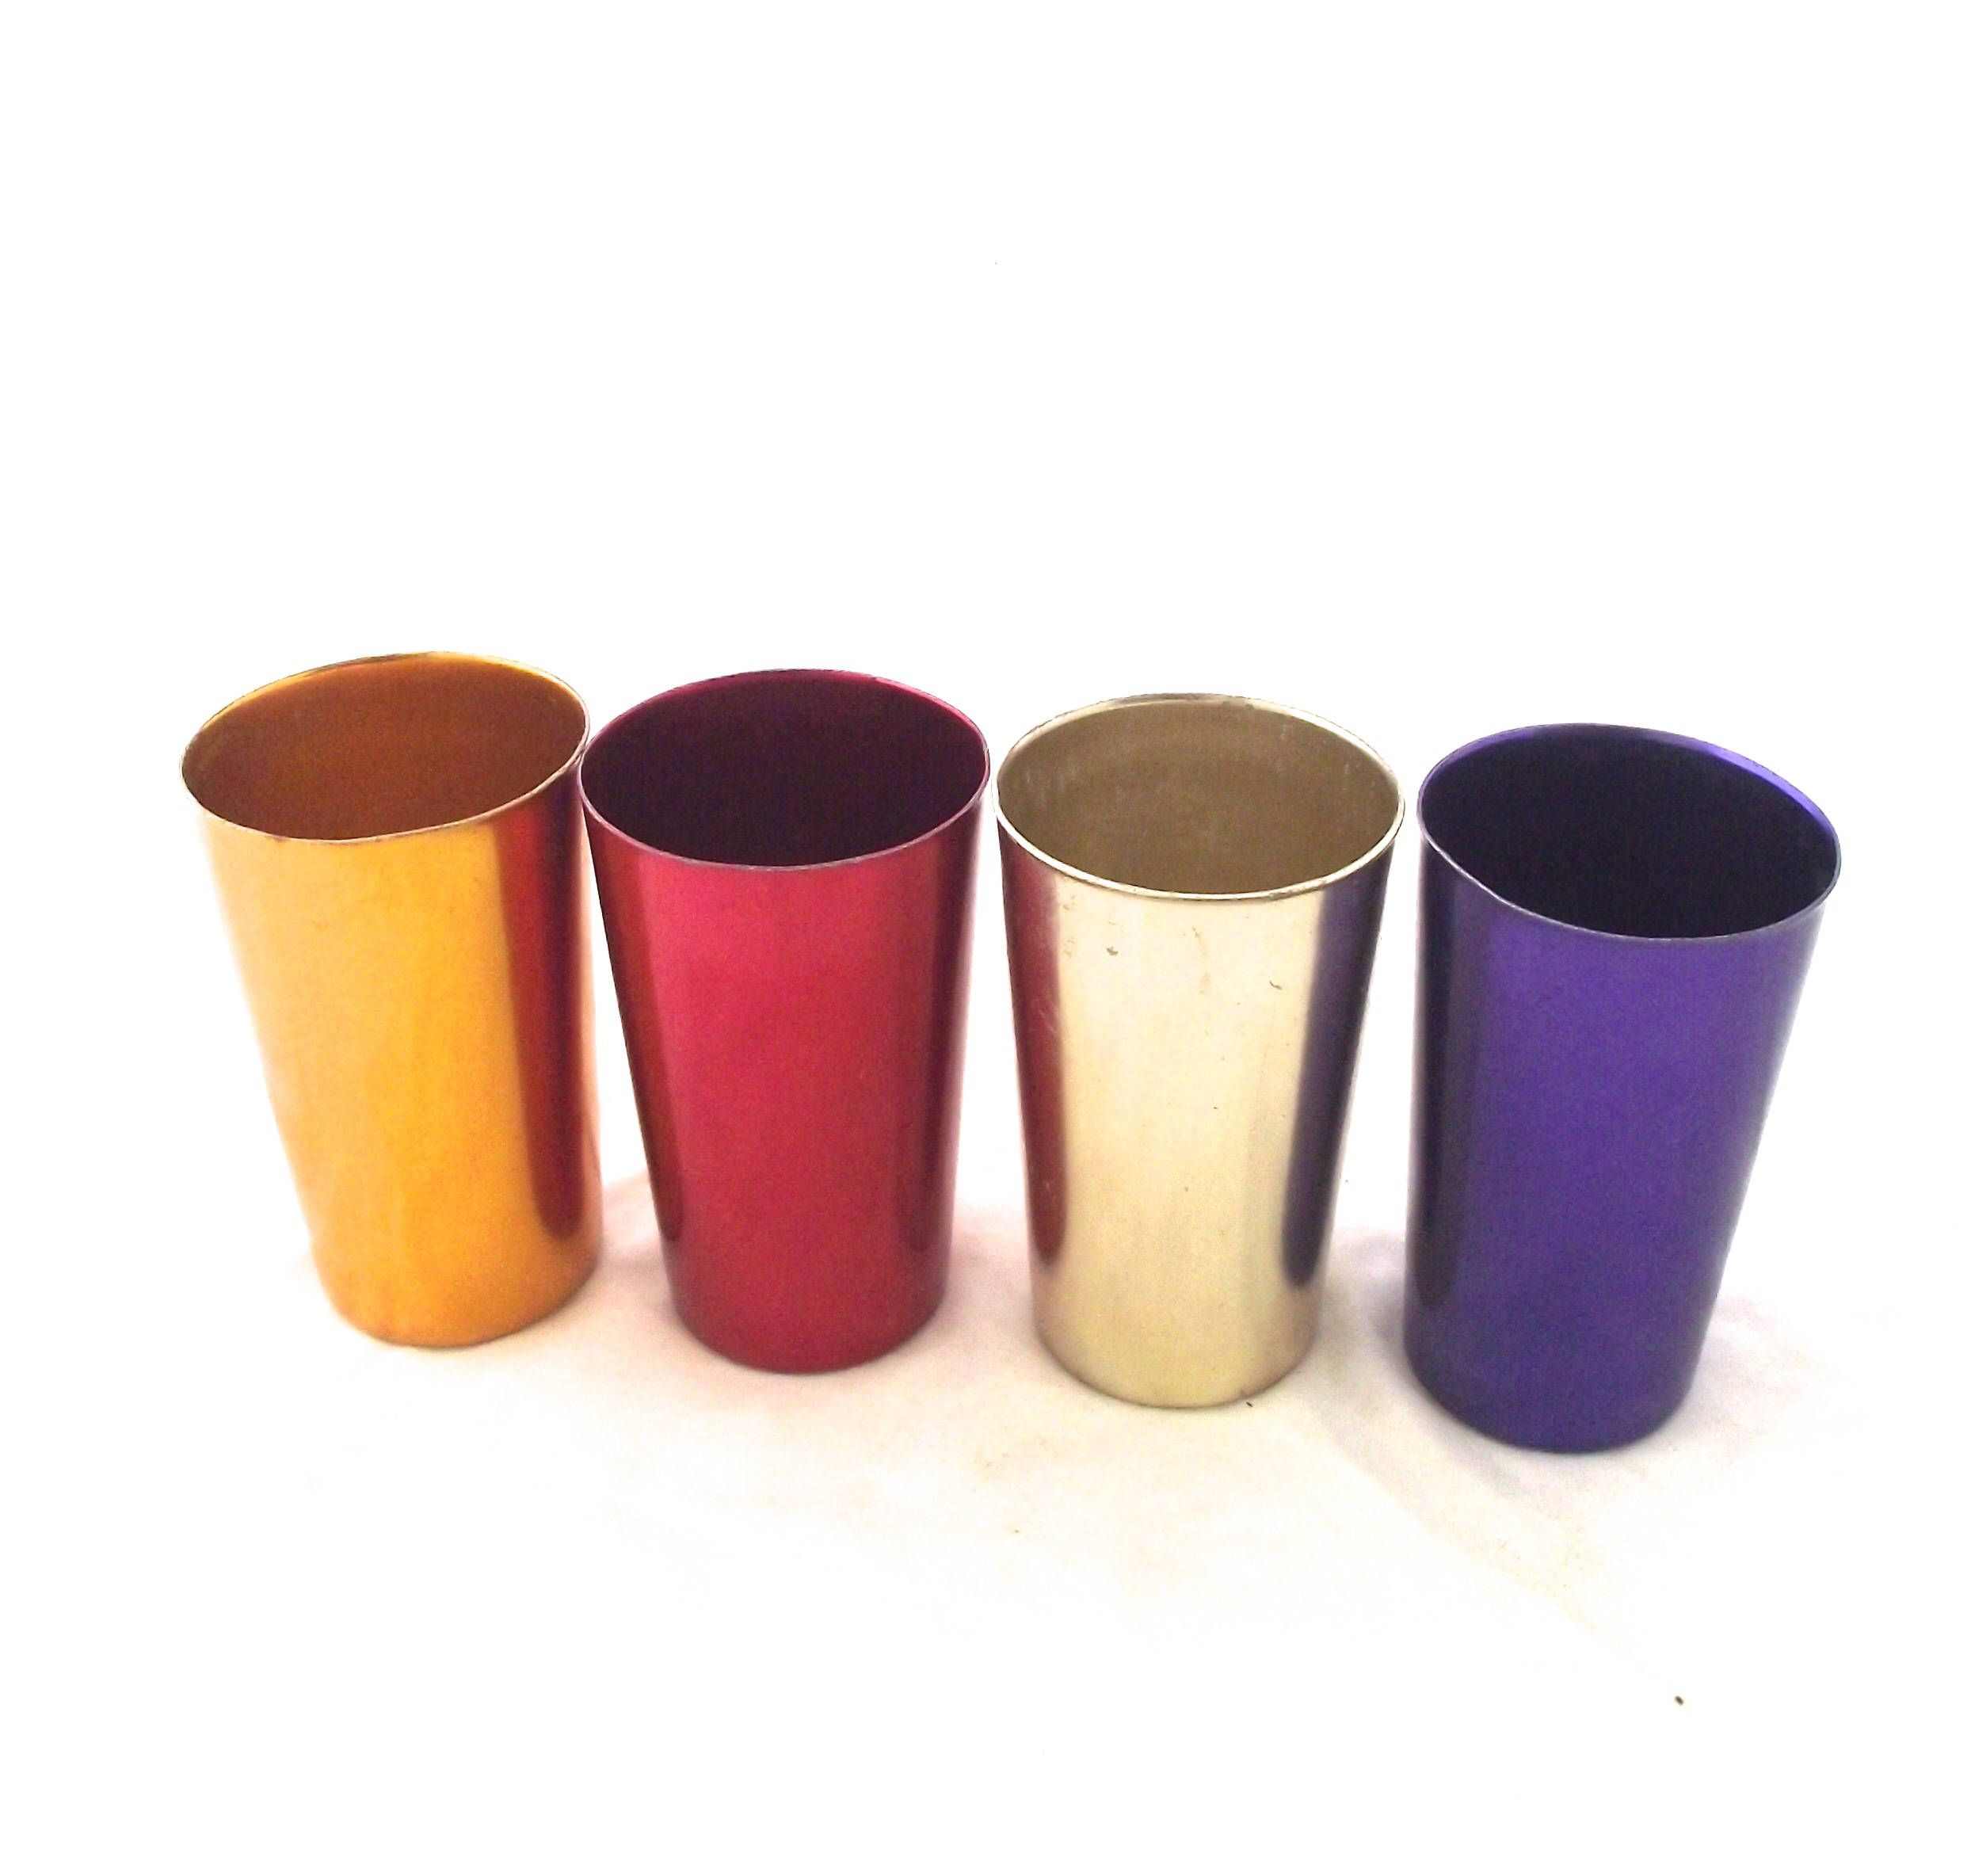 Bascal Jewel Tone Drinking Cups, Set Of 4 Vintage Metal Tumblers